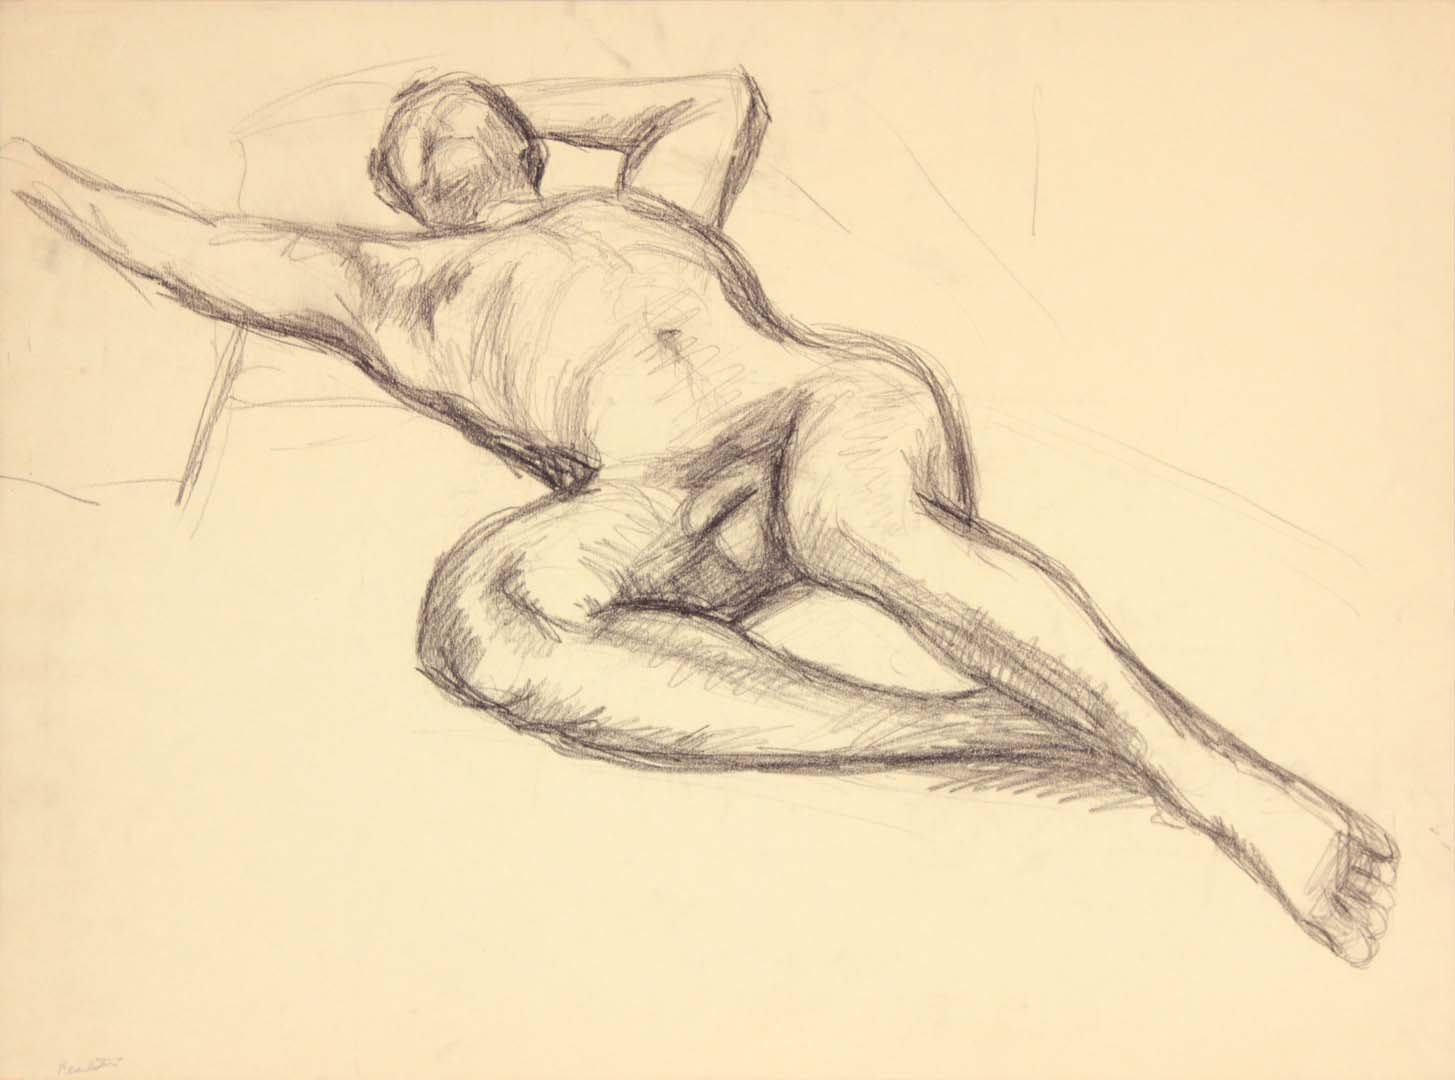 Reclining Male Model with Right Arm Outstretched Graphite 17.75 x 24